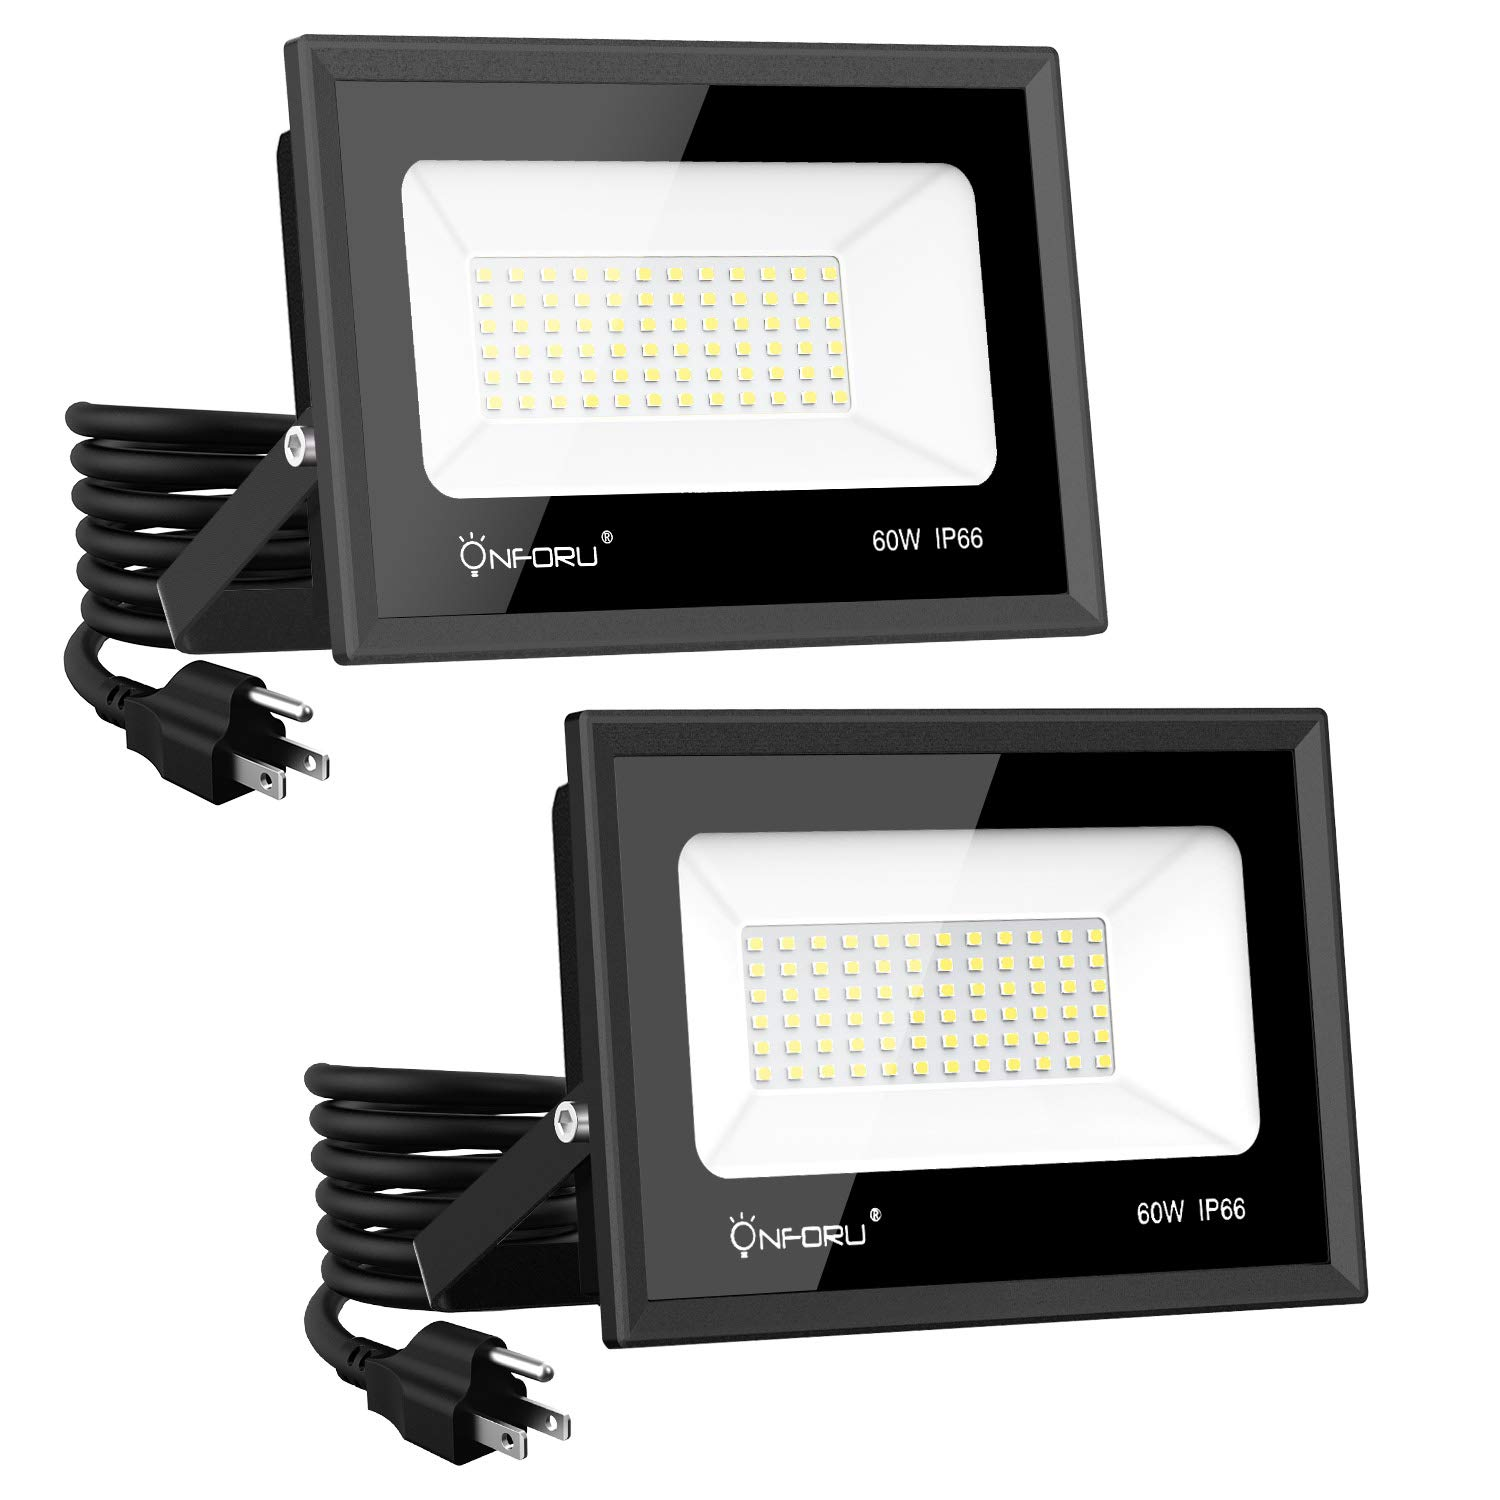 Onforu 2 Pack 60W LED Flood Light with Plug, 6,500lm Super Bright Work Light, 5000K Daylight White Security Lights, IP66 Waterproof Outdoor Landscape Floodlight for Yard, Garden, Playground, Party